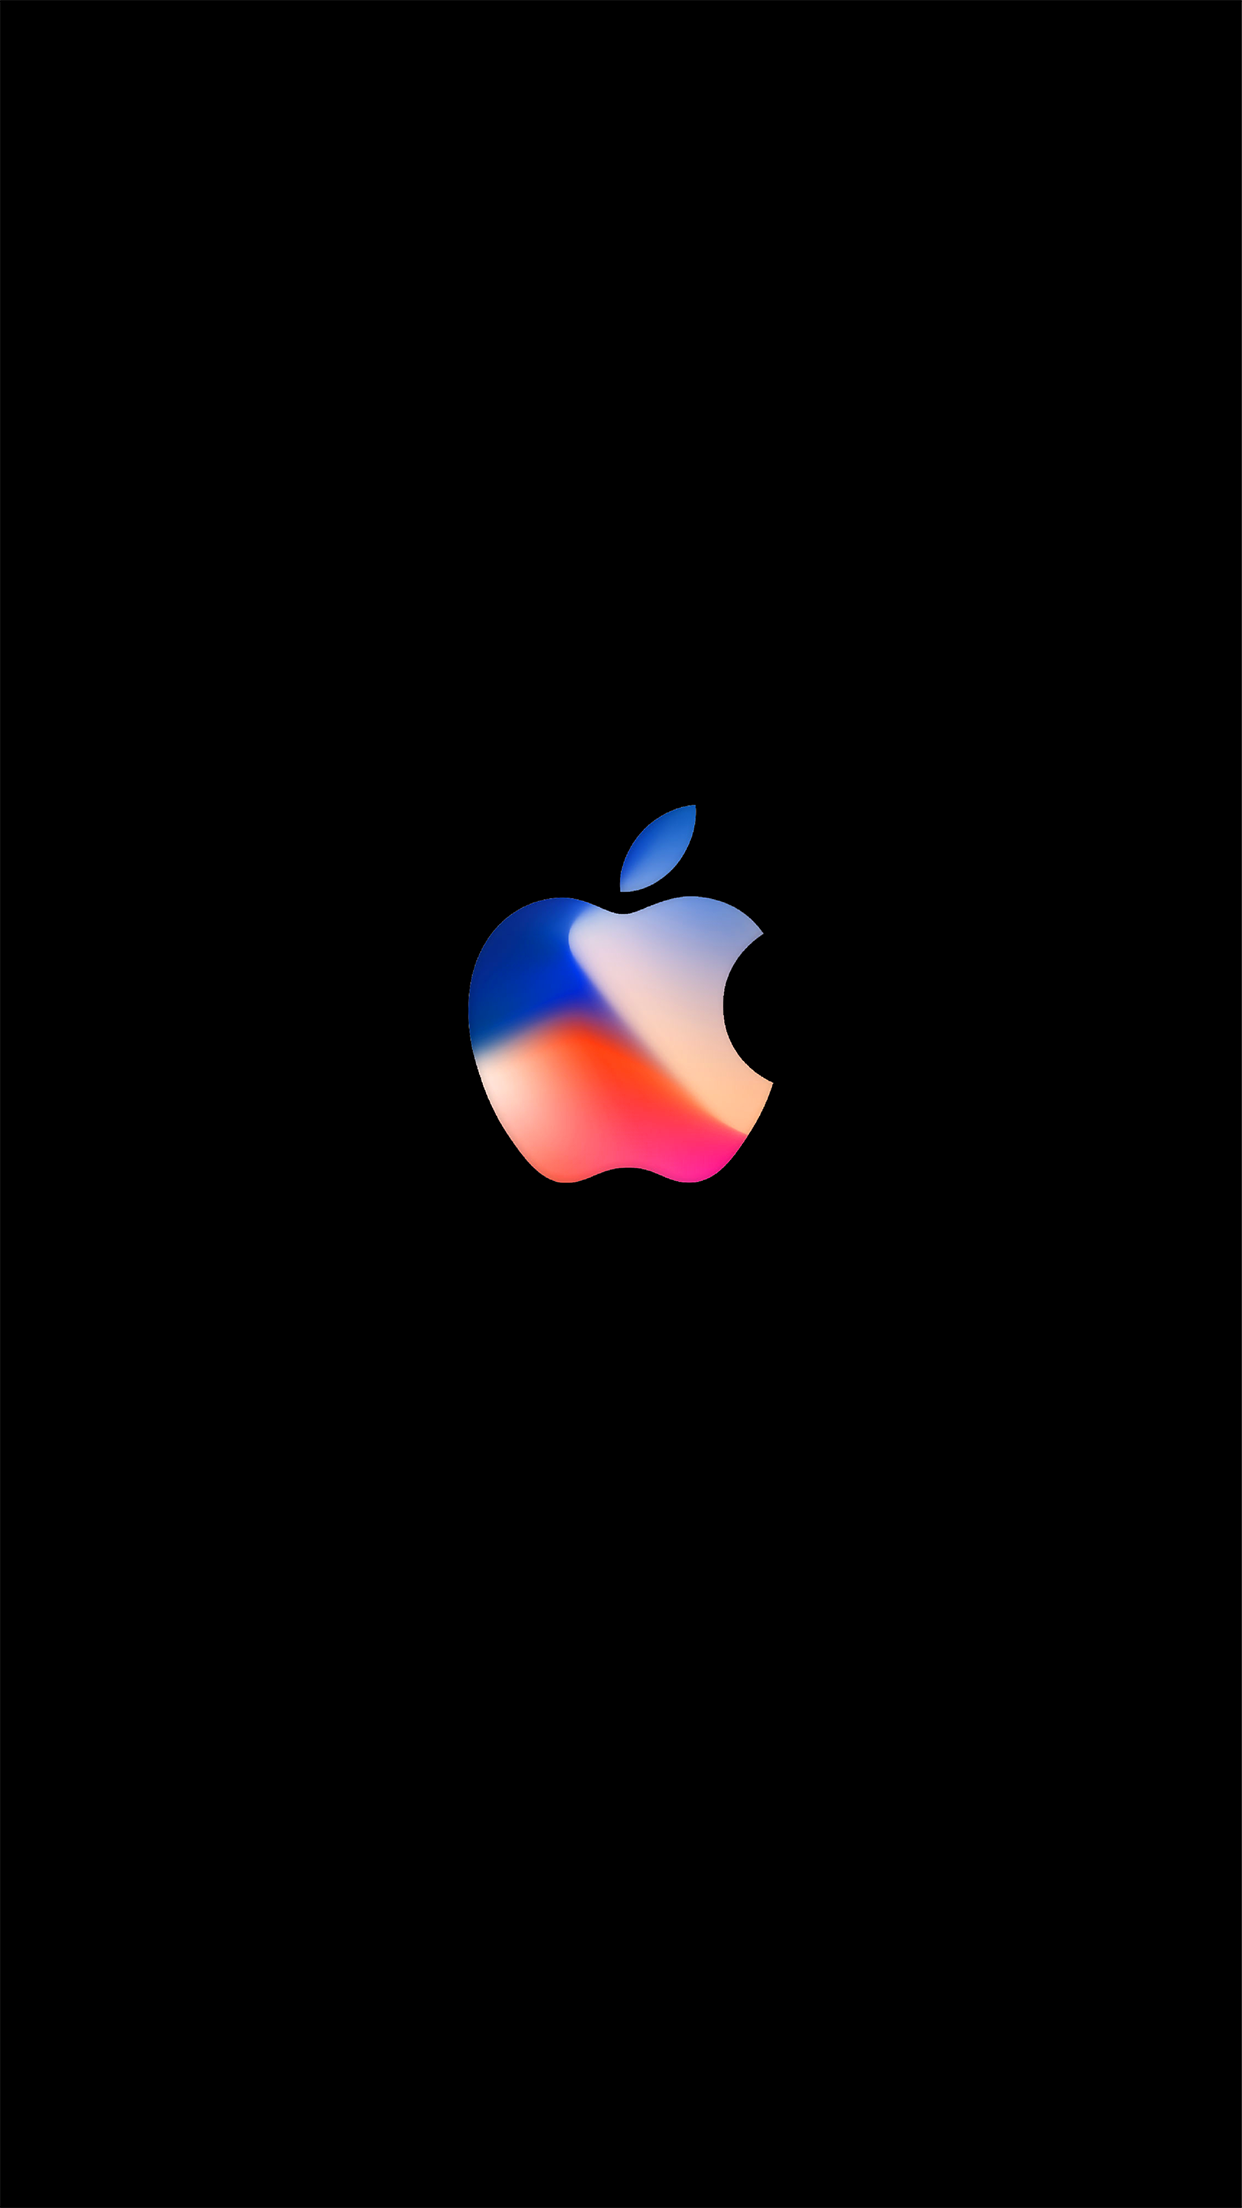 Iphone 8 Event Wallpapers En 2019 Pantalla Iphone 6 Plus